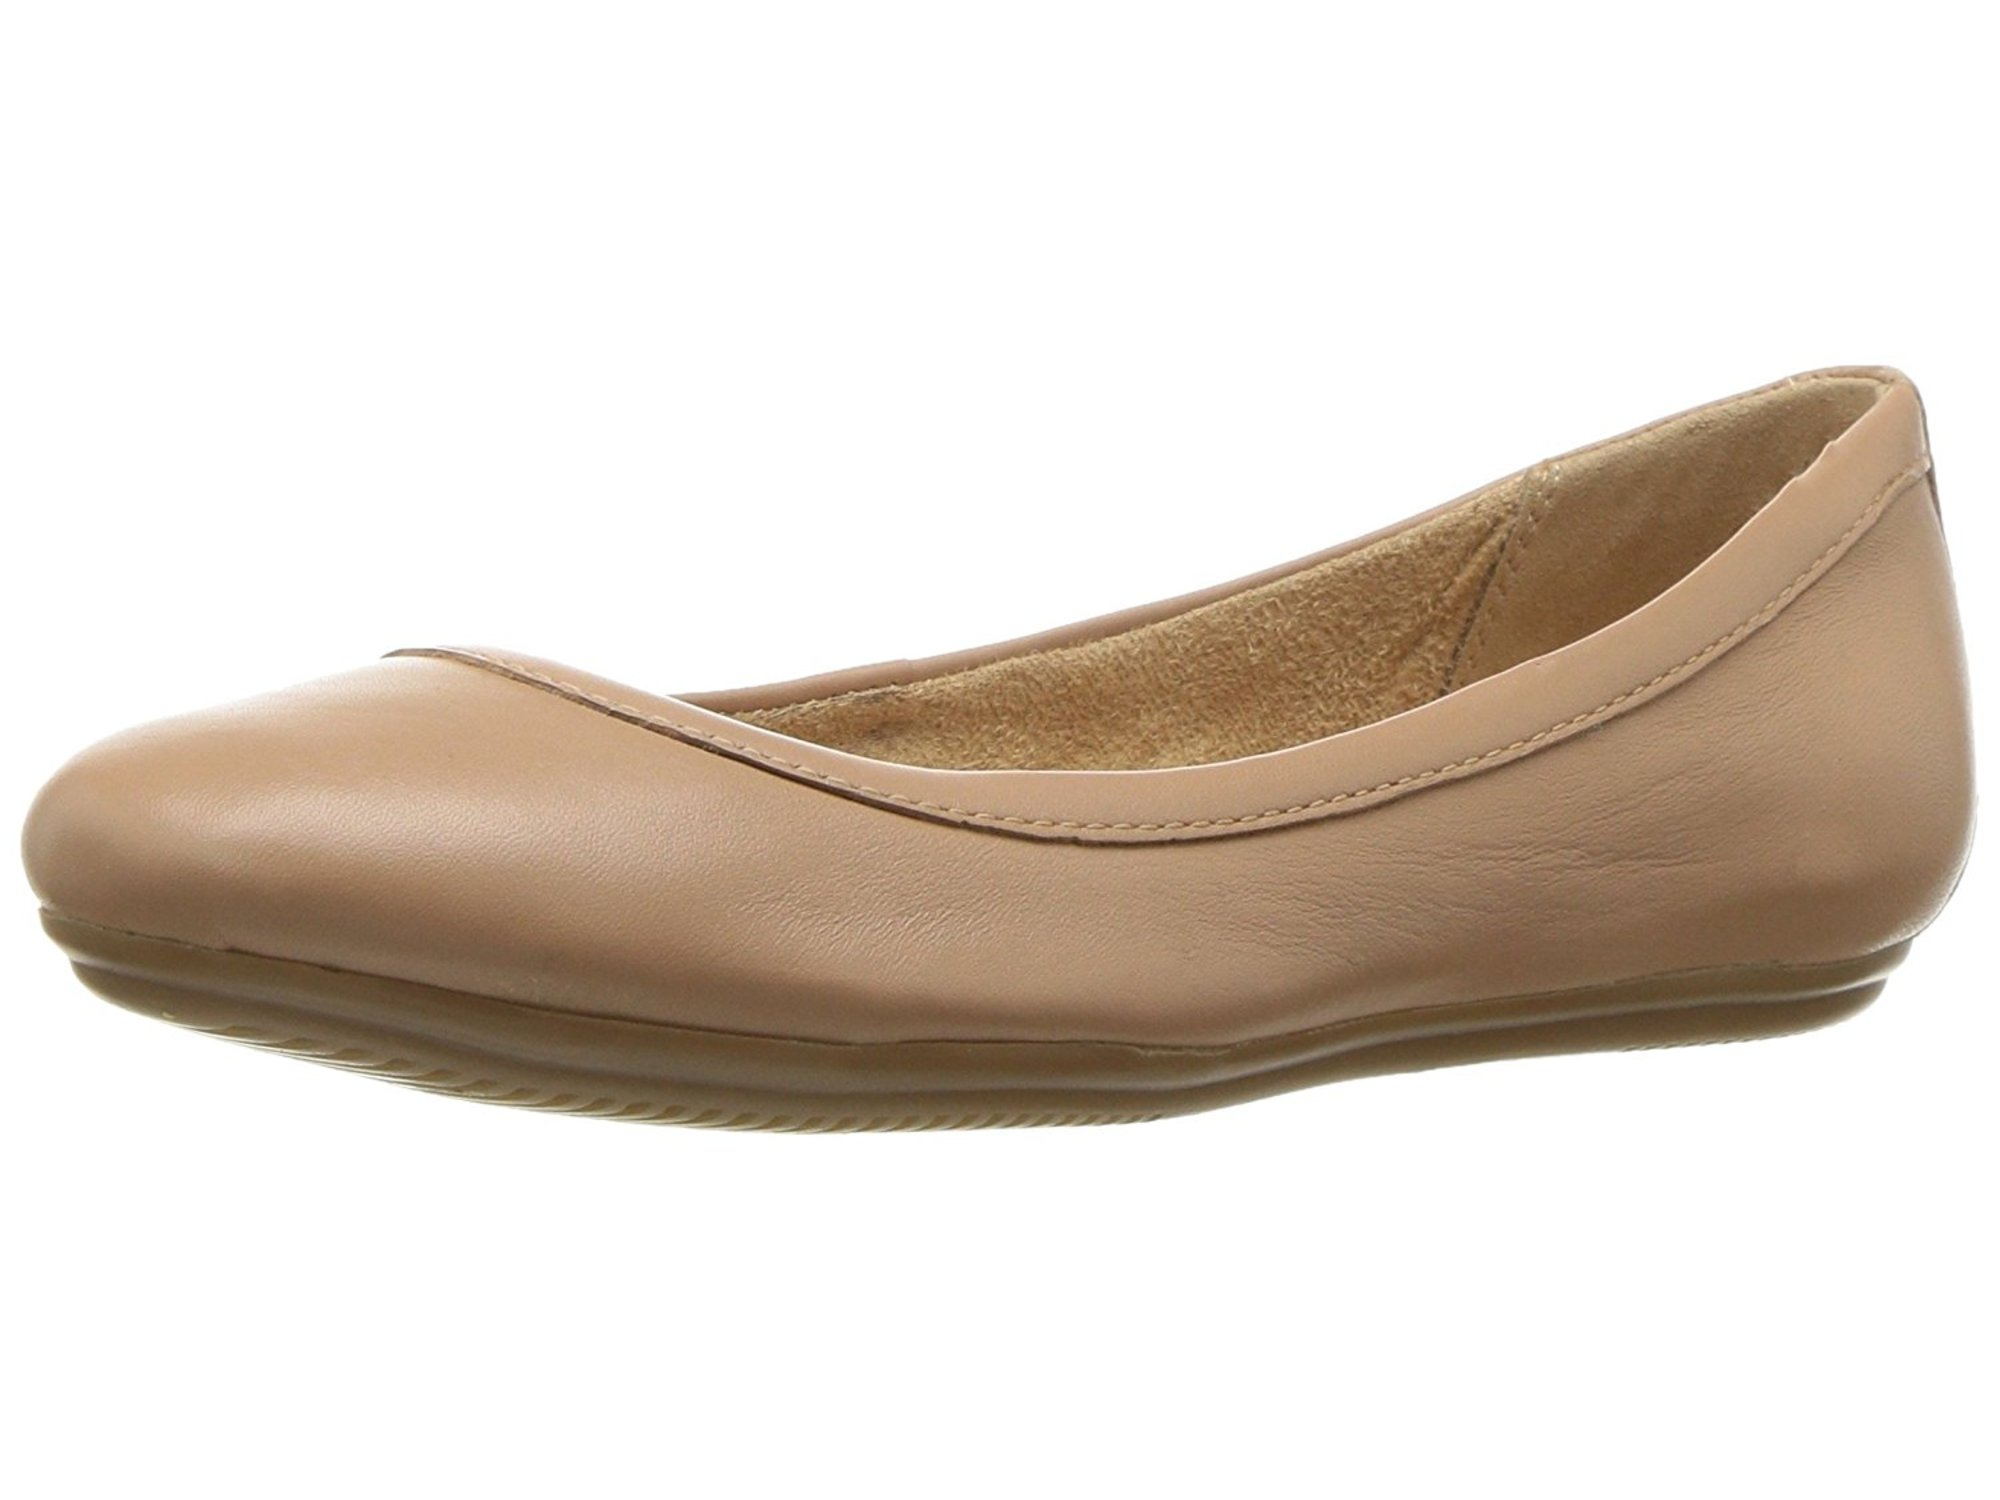 Naturalizer Womens Brittany Leather Closed Toe Slide Flats by Naturalizer